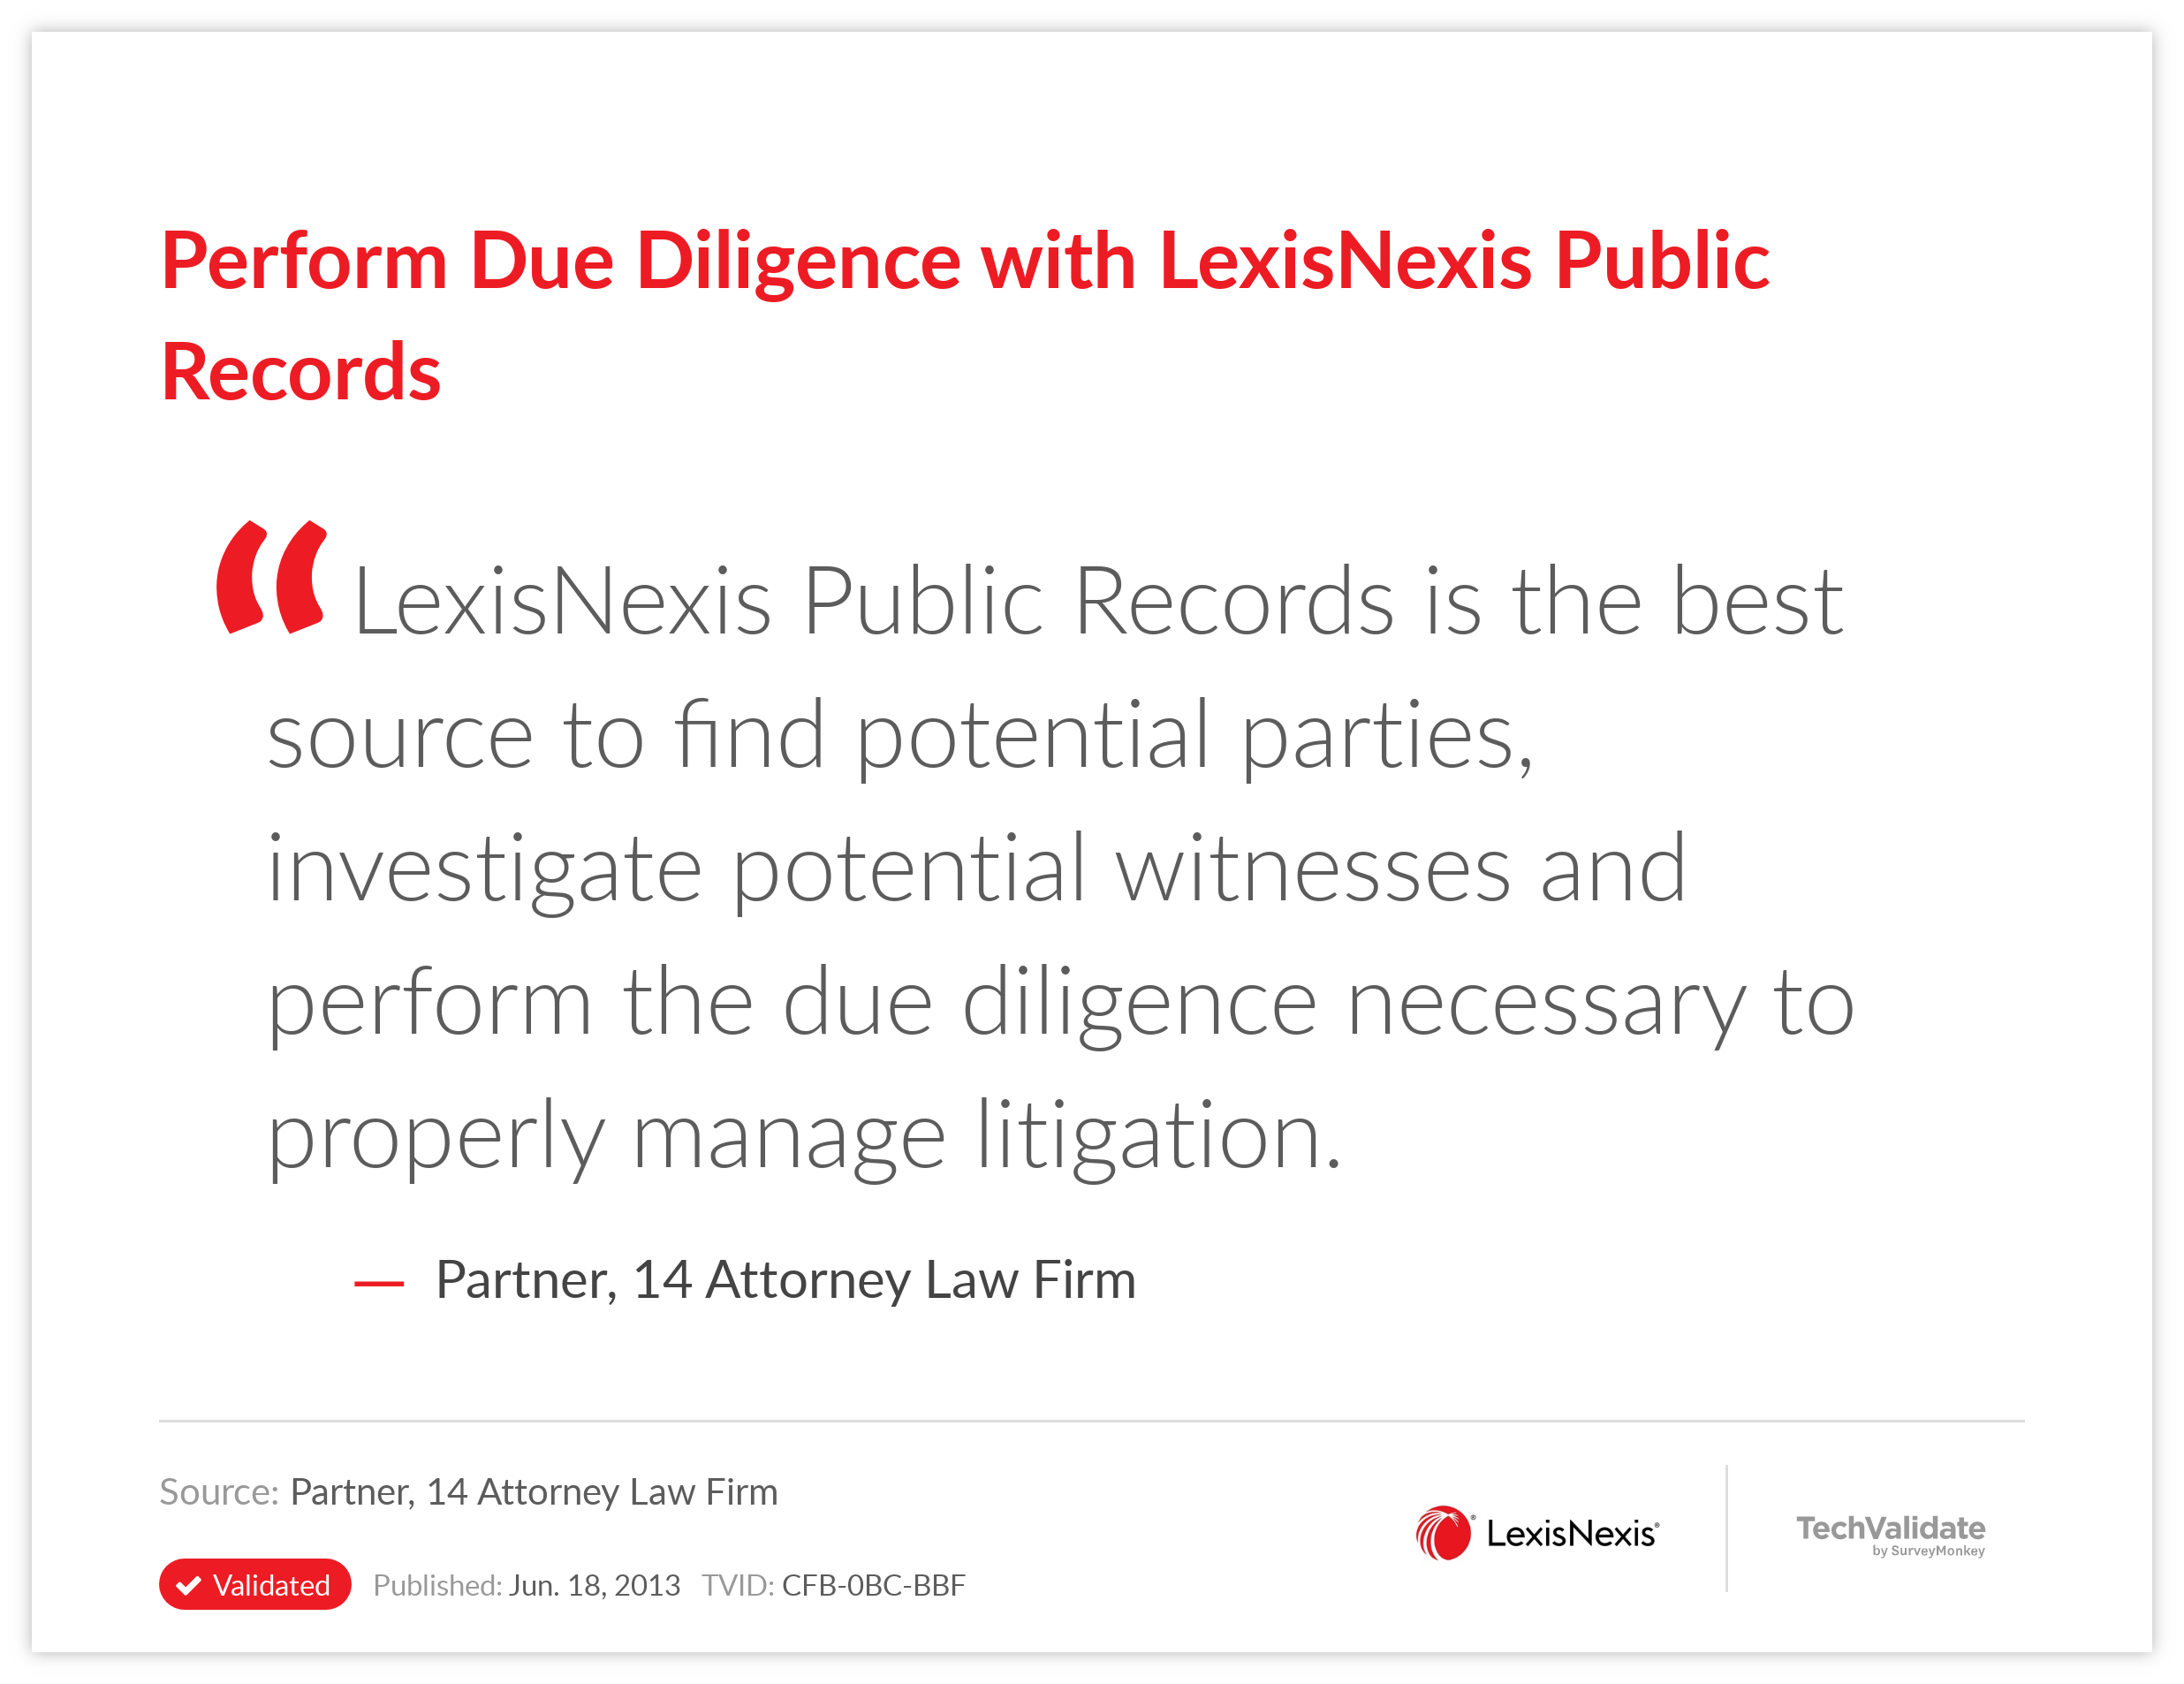 Perform Due Diligence with LexisNexis Public Records